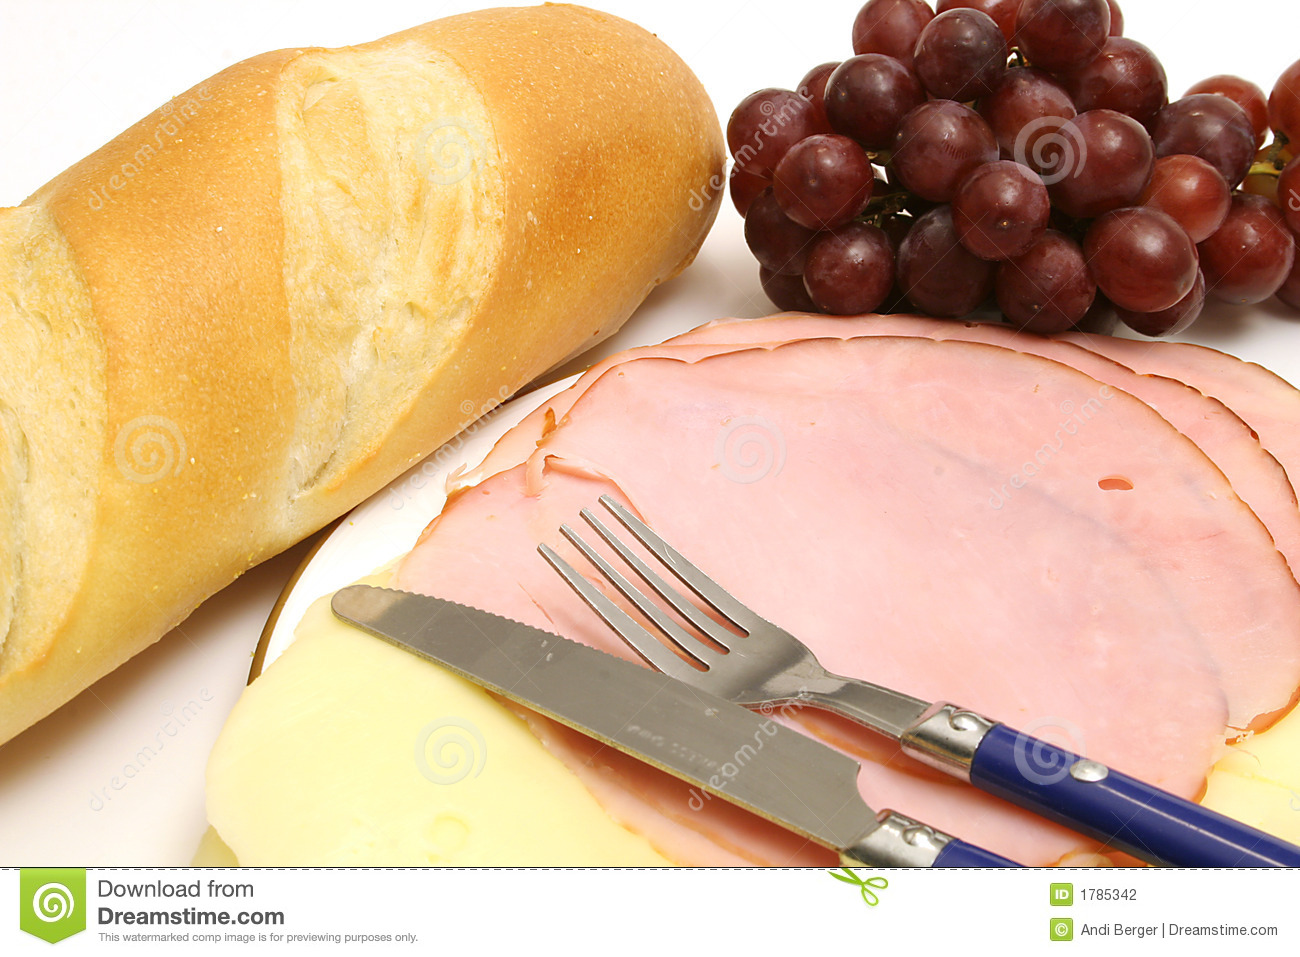 Stock Photography Ham Cheese W Bread Grapes Image1785342 on turkey lunch meat nutrition information